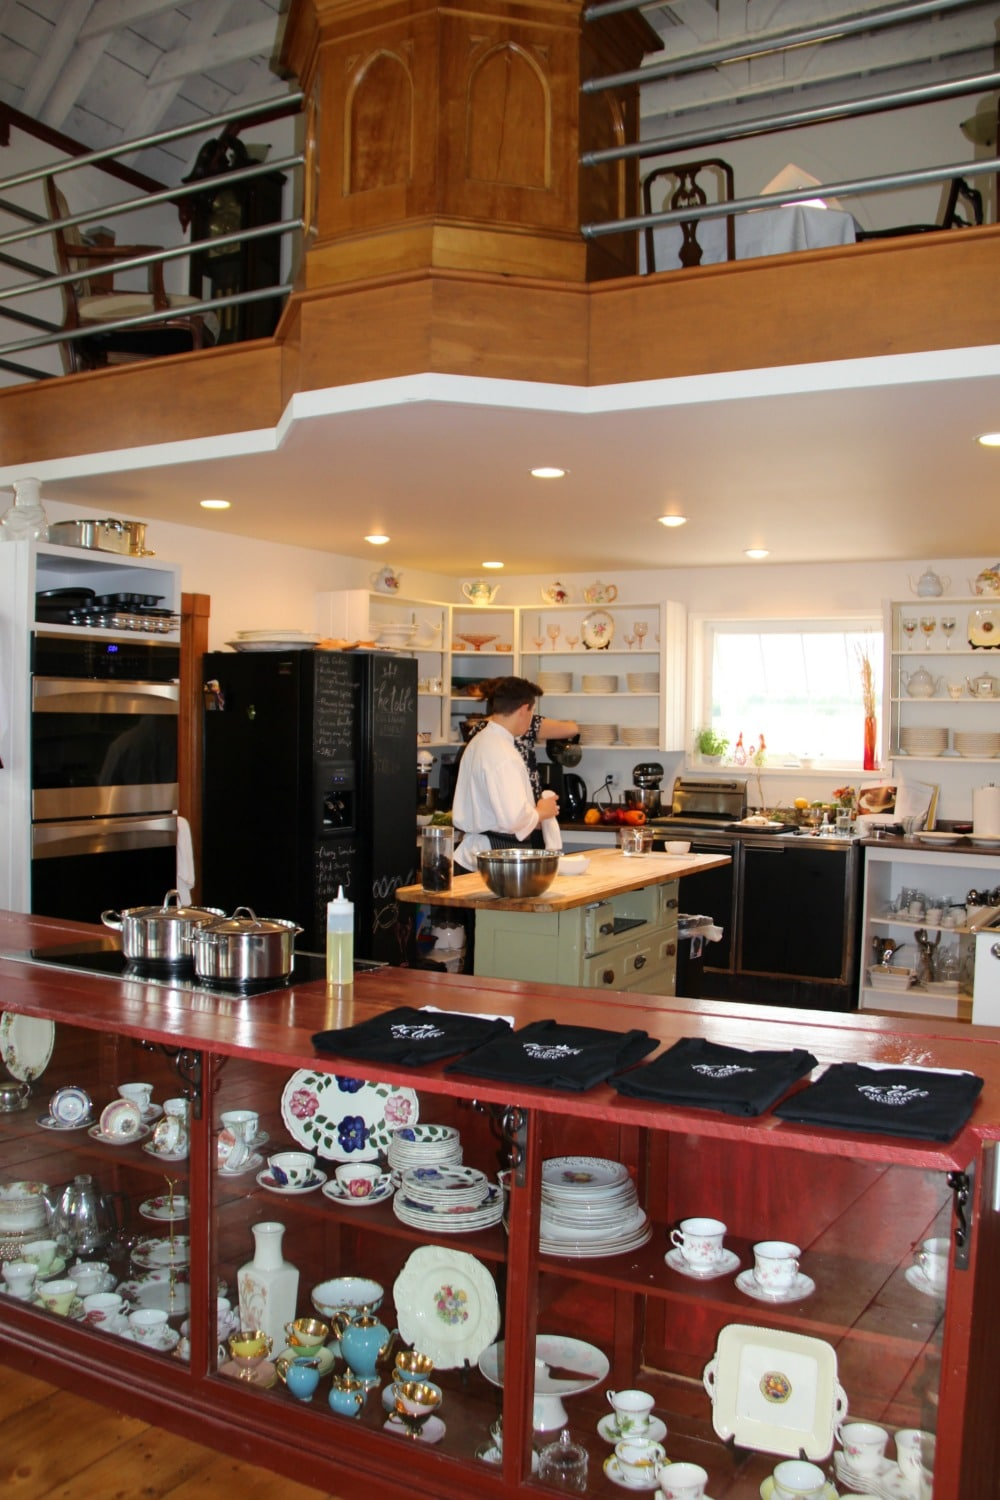 cooking classes pei kitchen table cooking school The Table Cooking Classes PEI